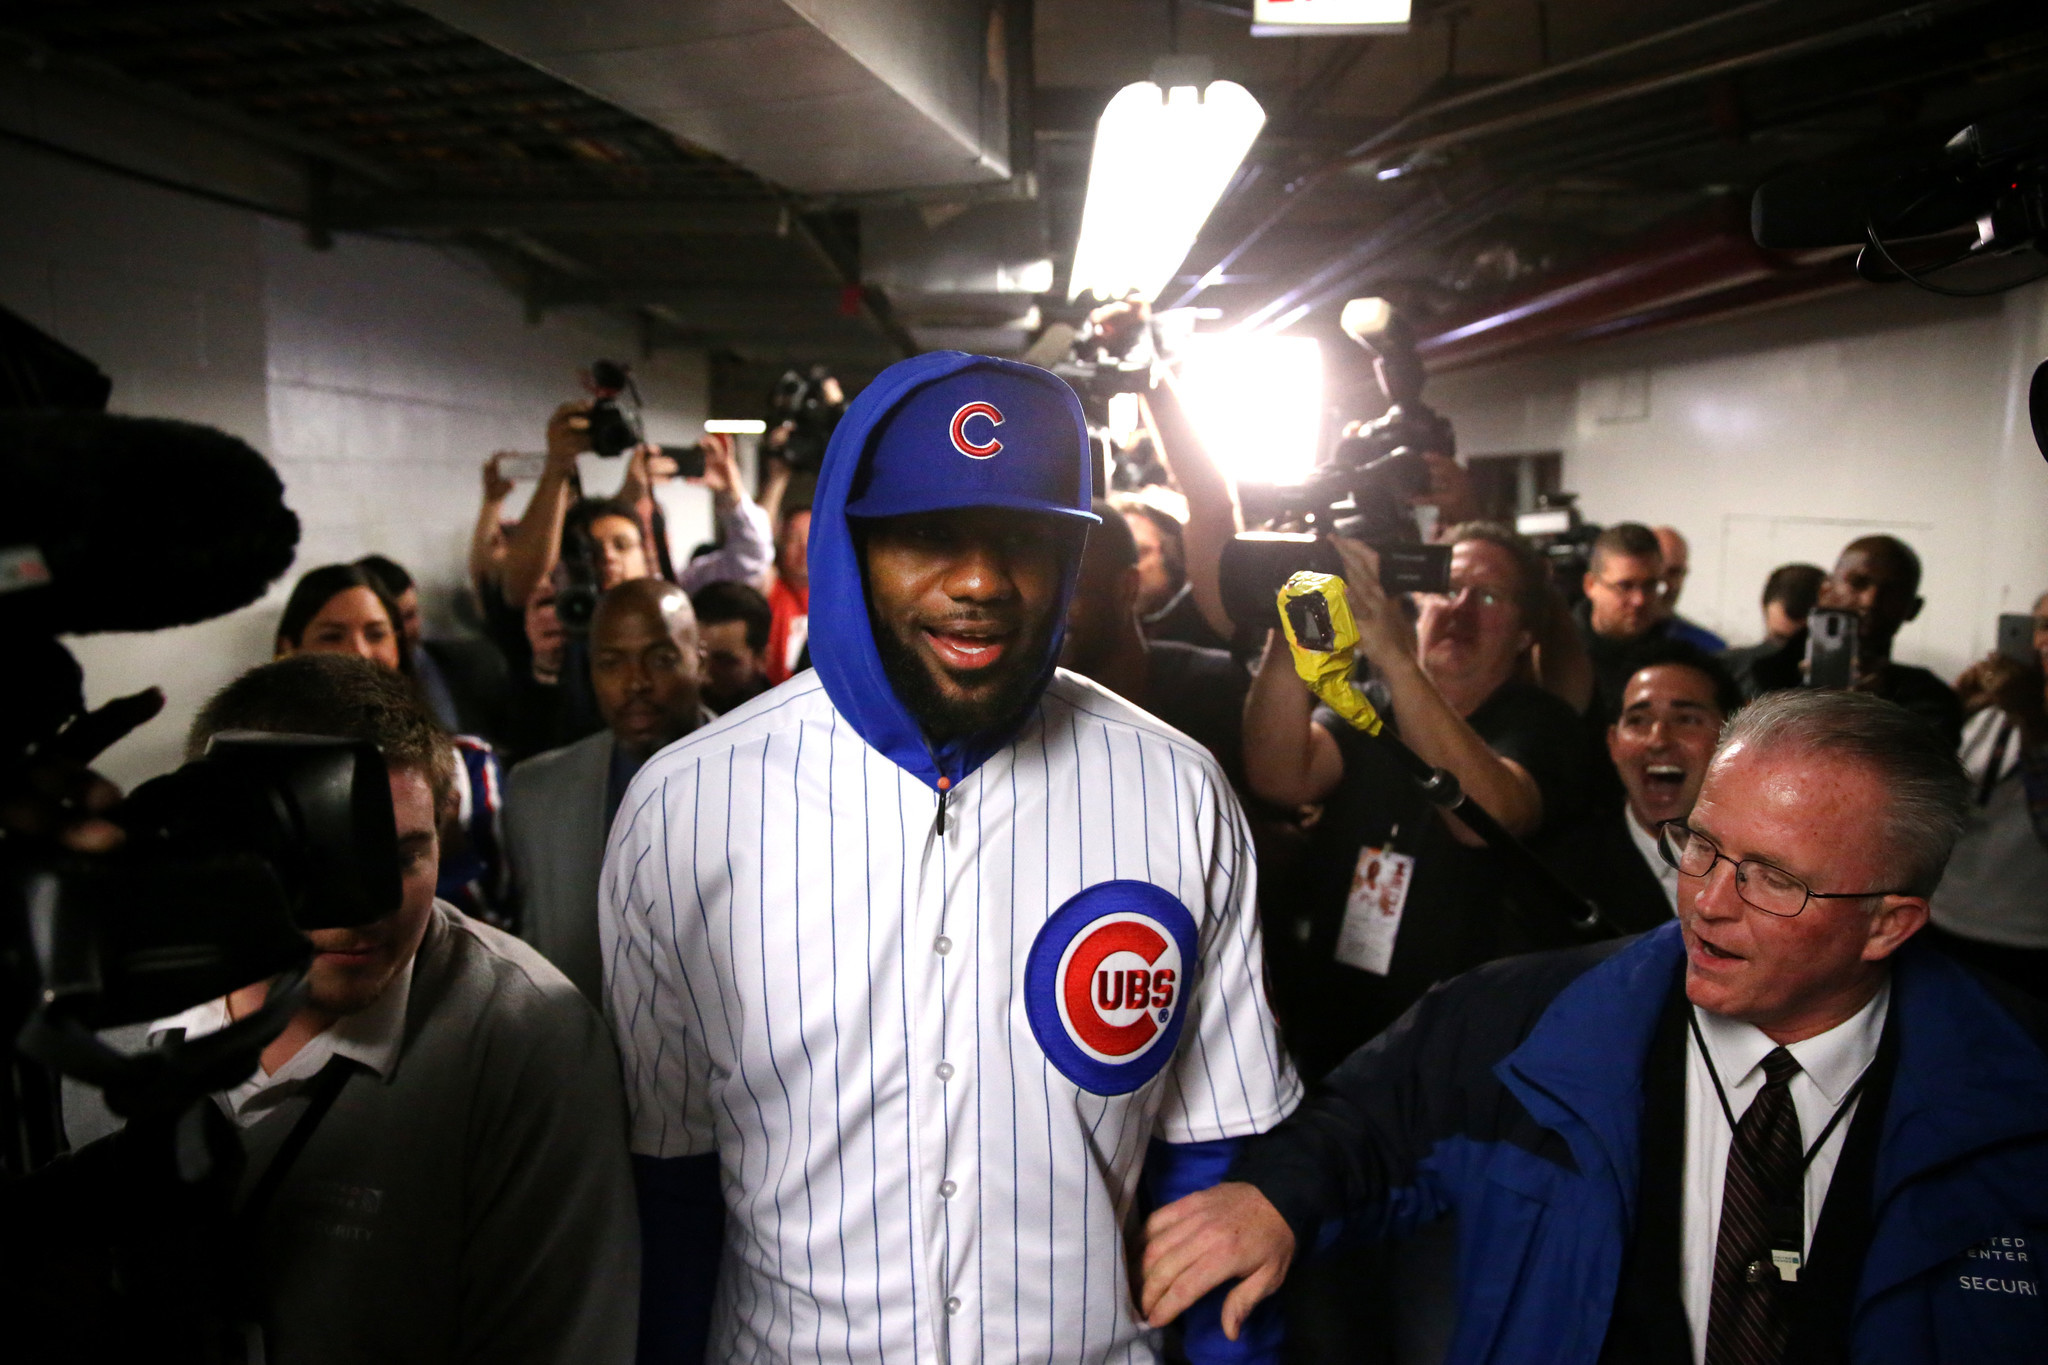 LeBron James gracious in defeat — both on Cubs bet and Cavs loss to